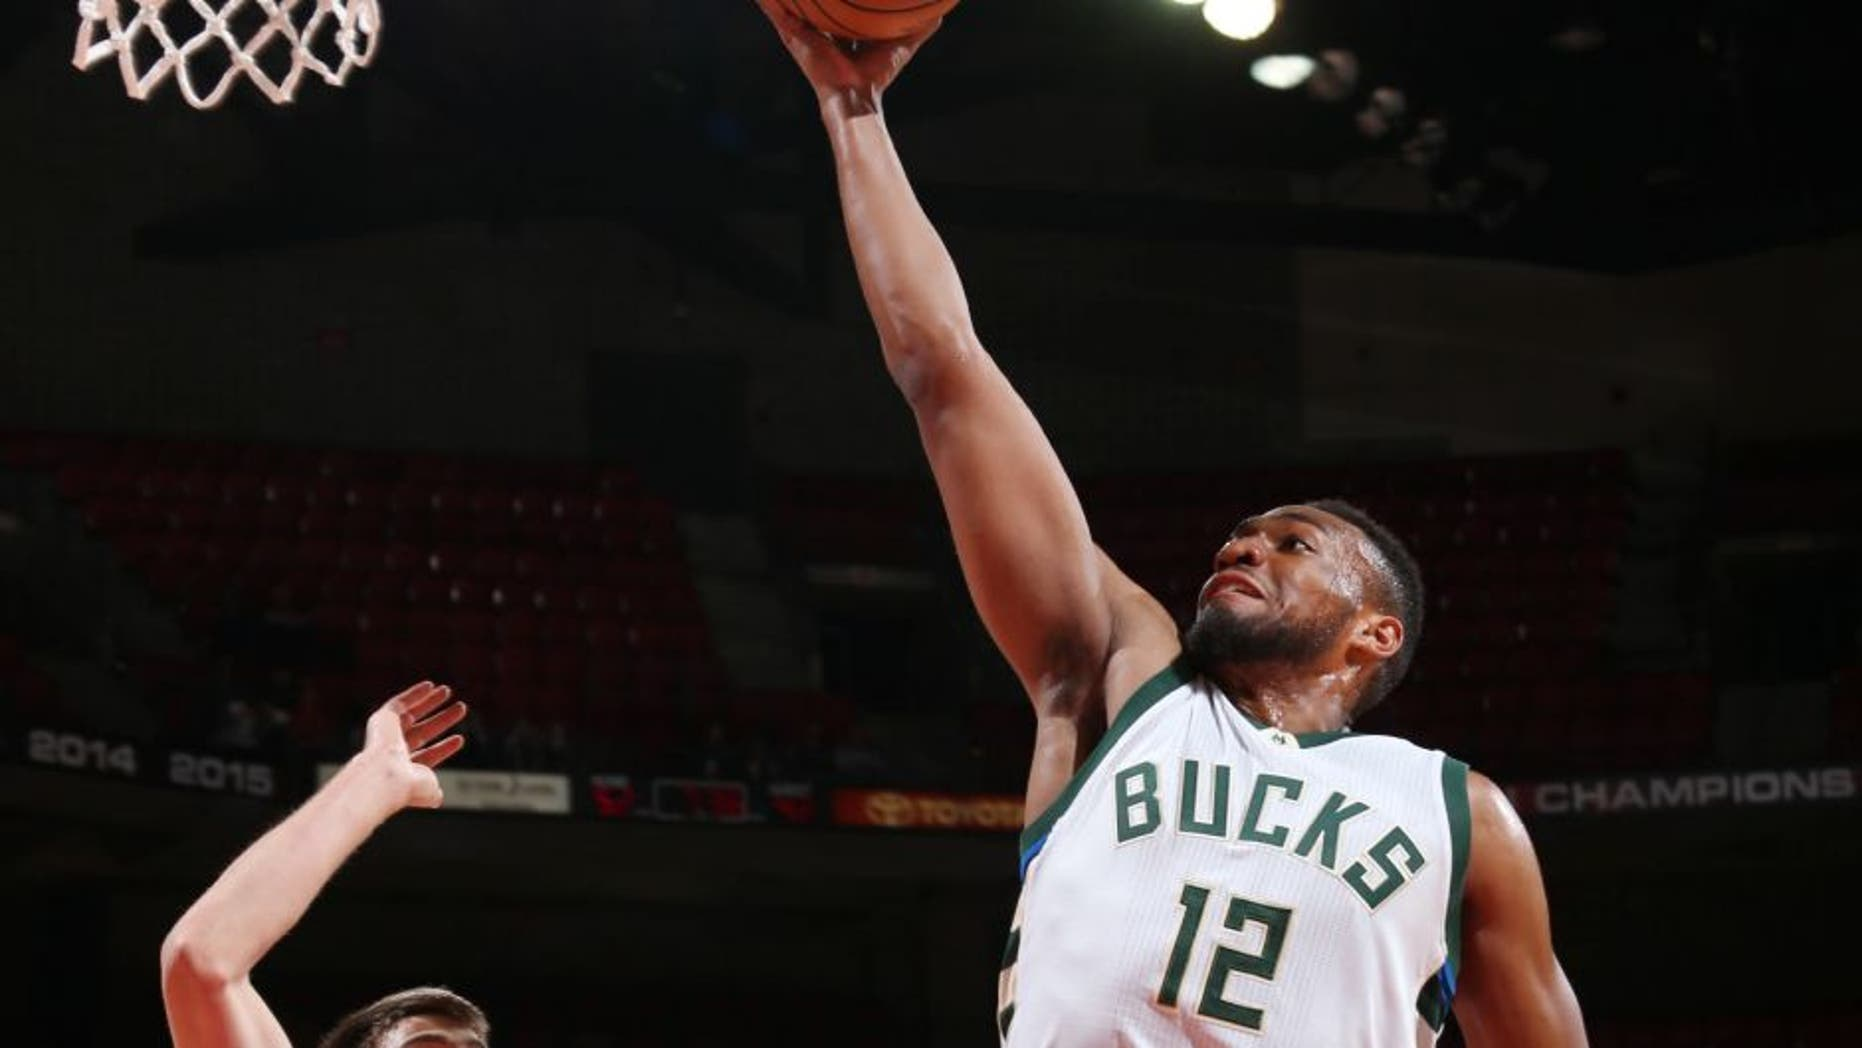 Jabari Parker of the Milwaukee Bucks goes up for a lay up during a preseason game against the Dallas Mavericks.